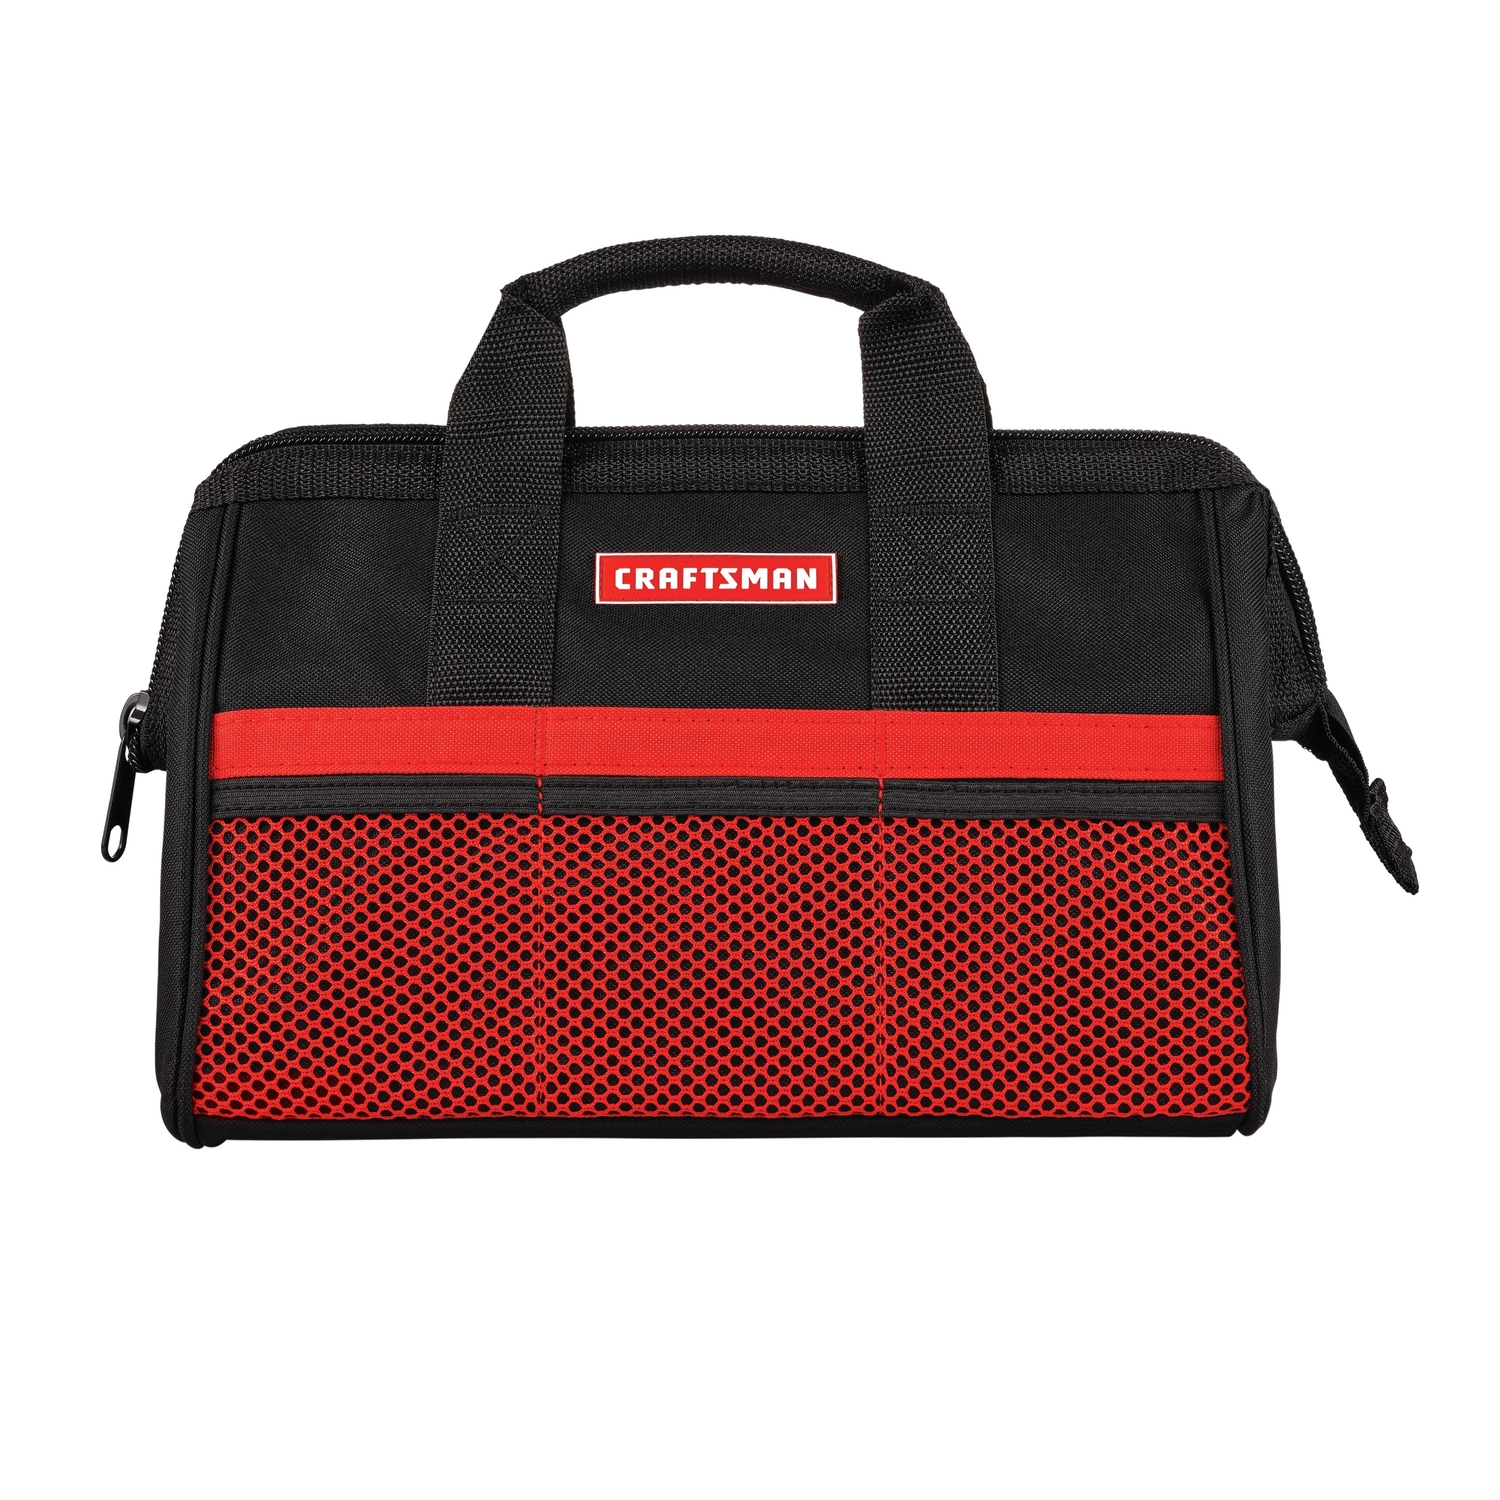 New Craftsman 13 inch tool bag Large Mouth 37535  FREE PRIORITY  SHIPPING .